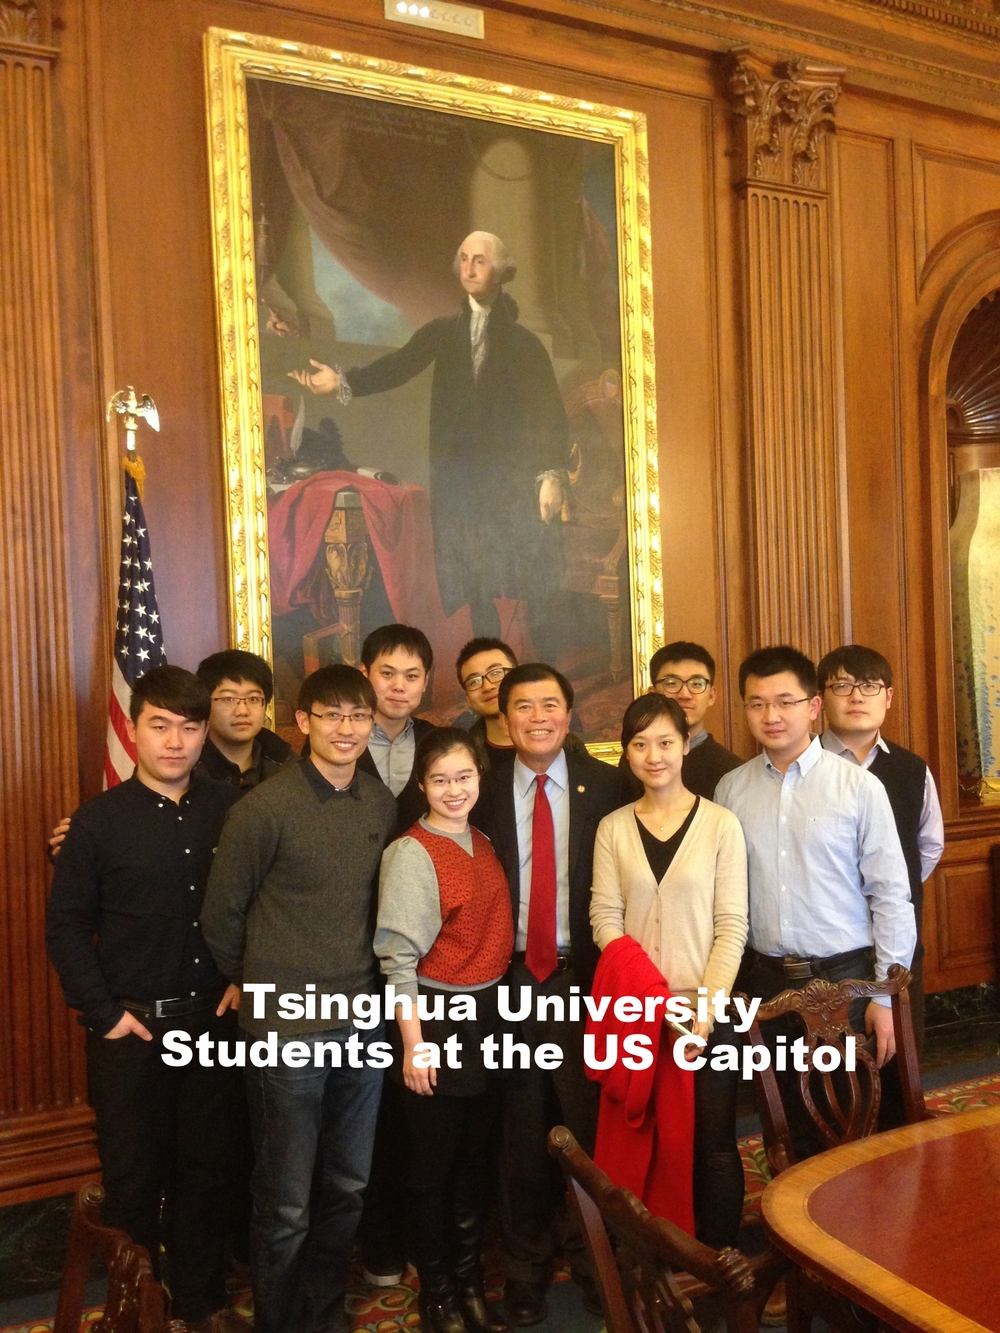 David Wu with Tsinghua University students at the US Capitol